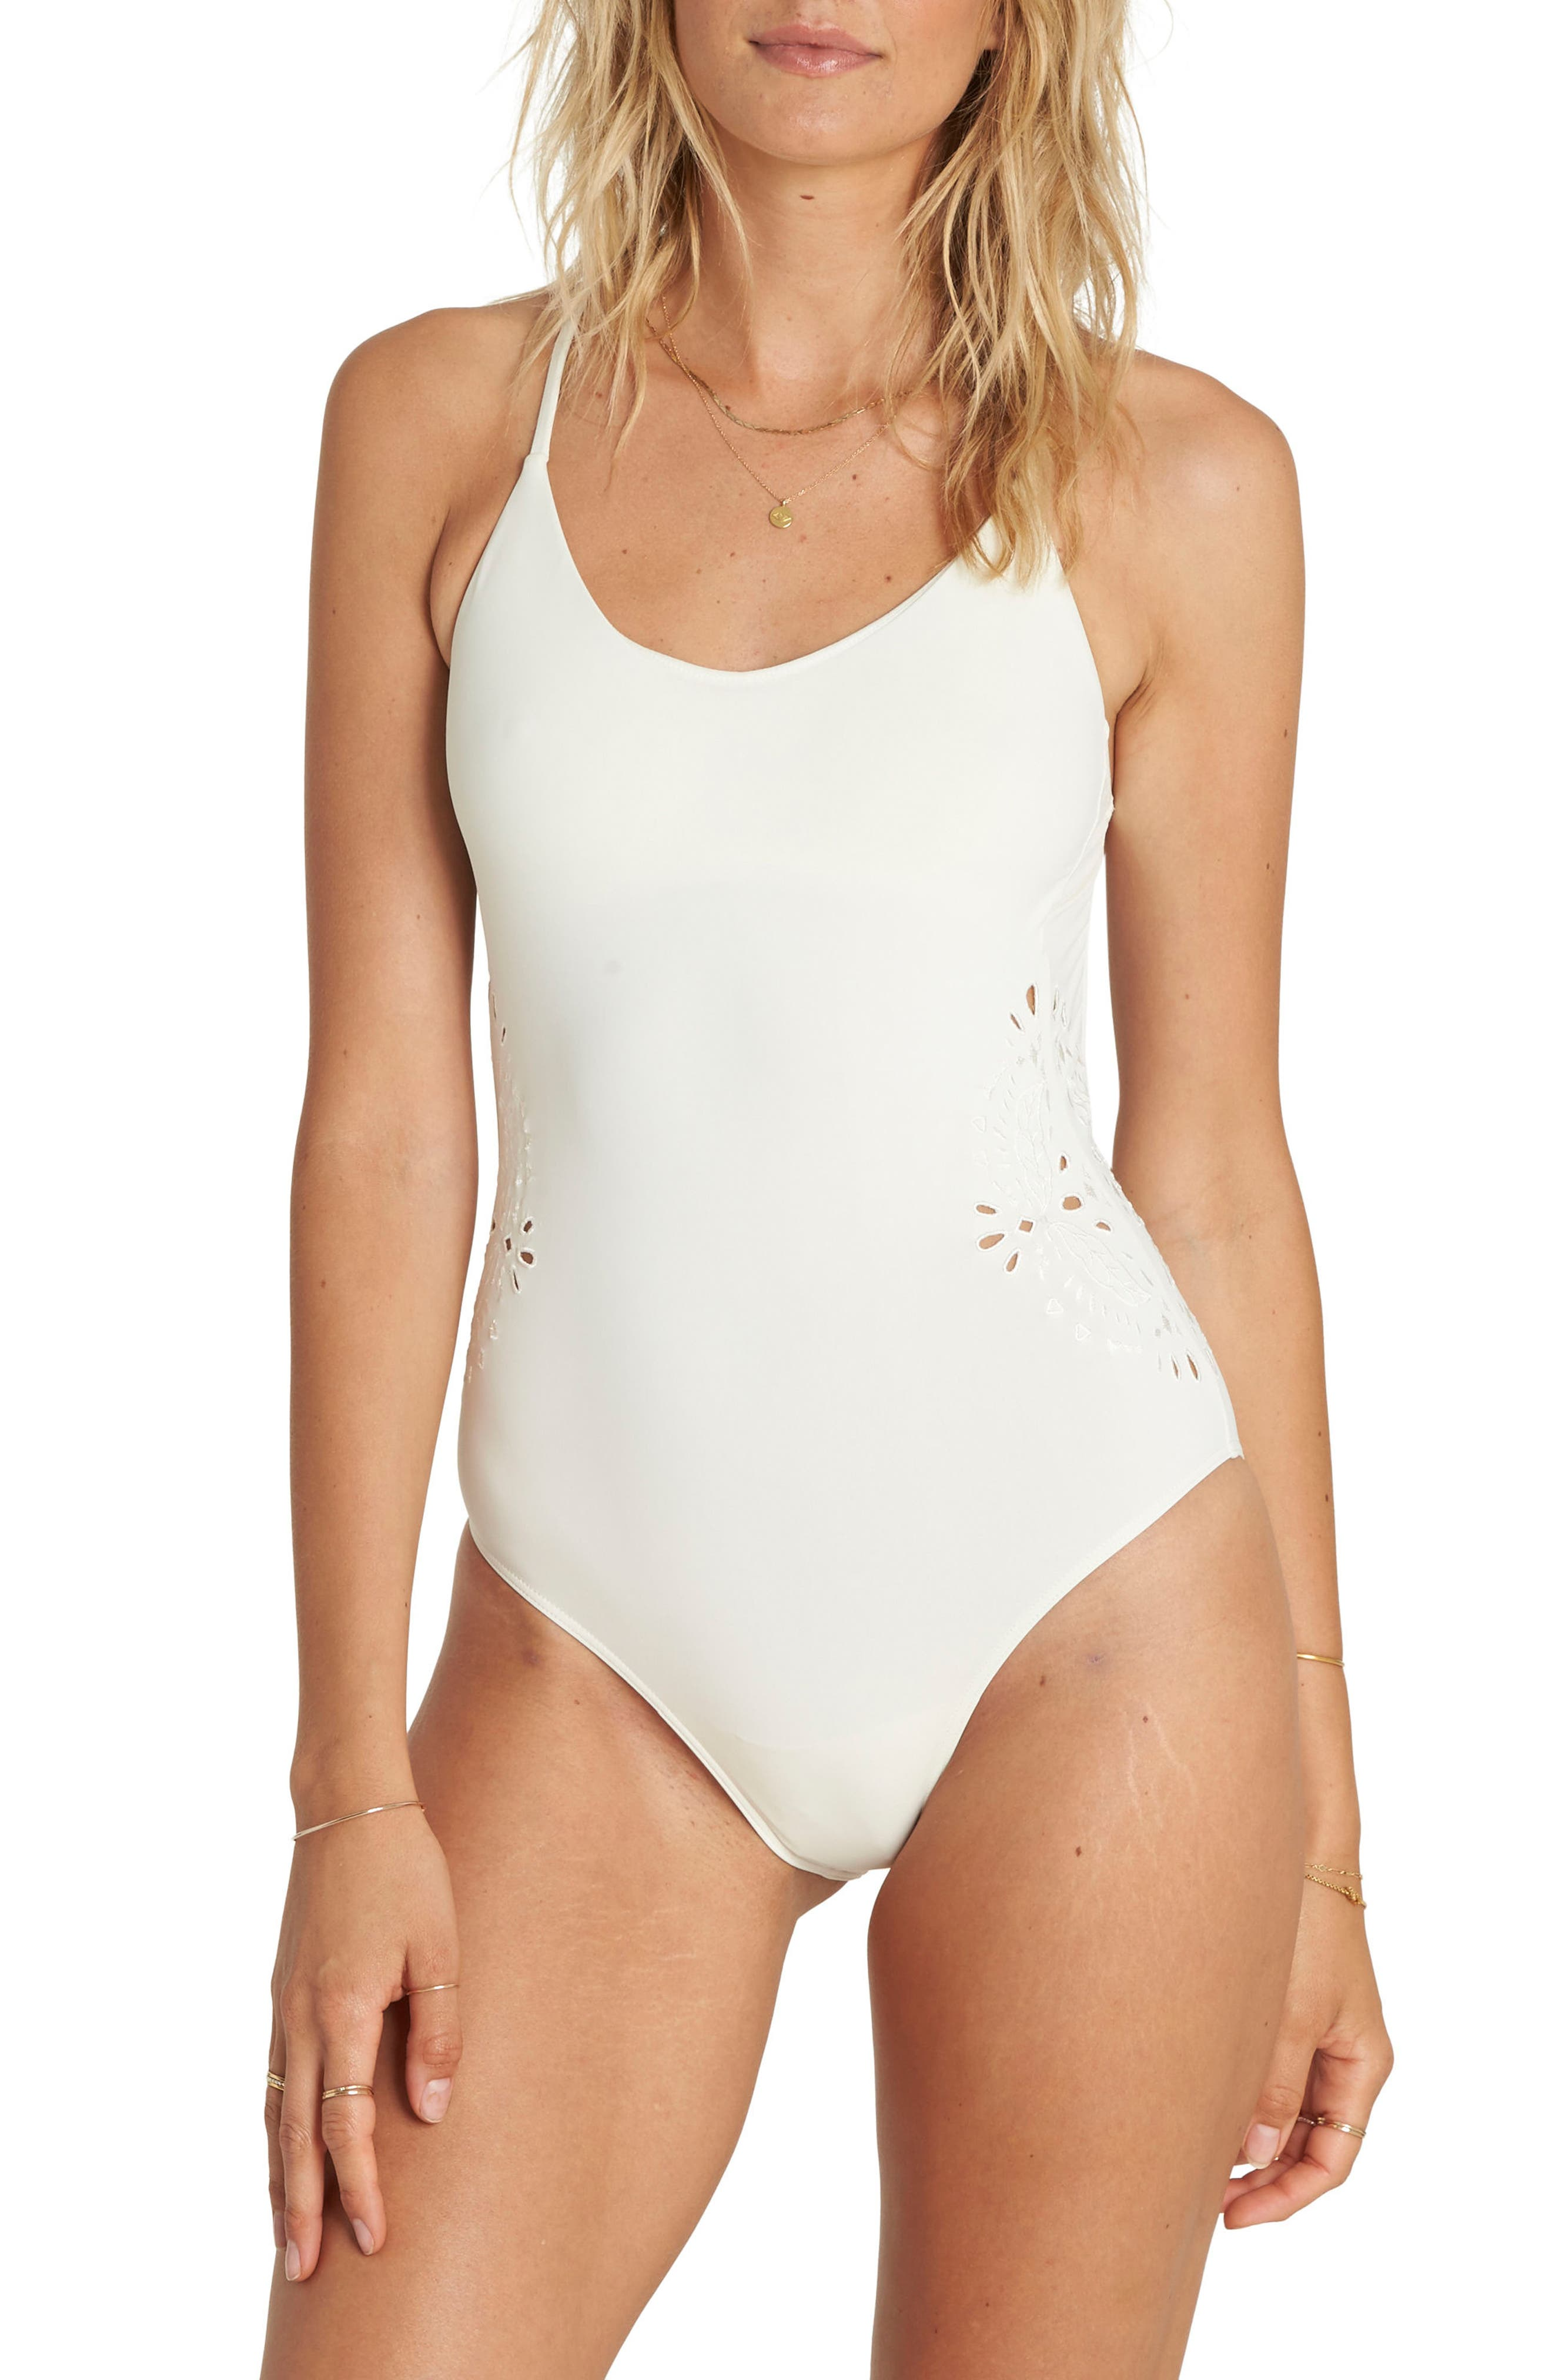 Bright One One-Piece Swimsuit,                             Main thumbnail 1, color,                             100